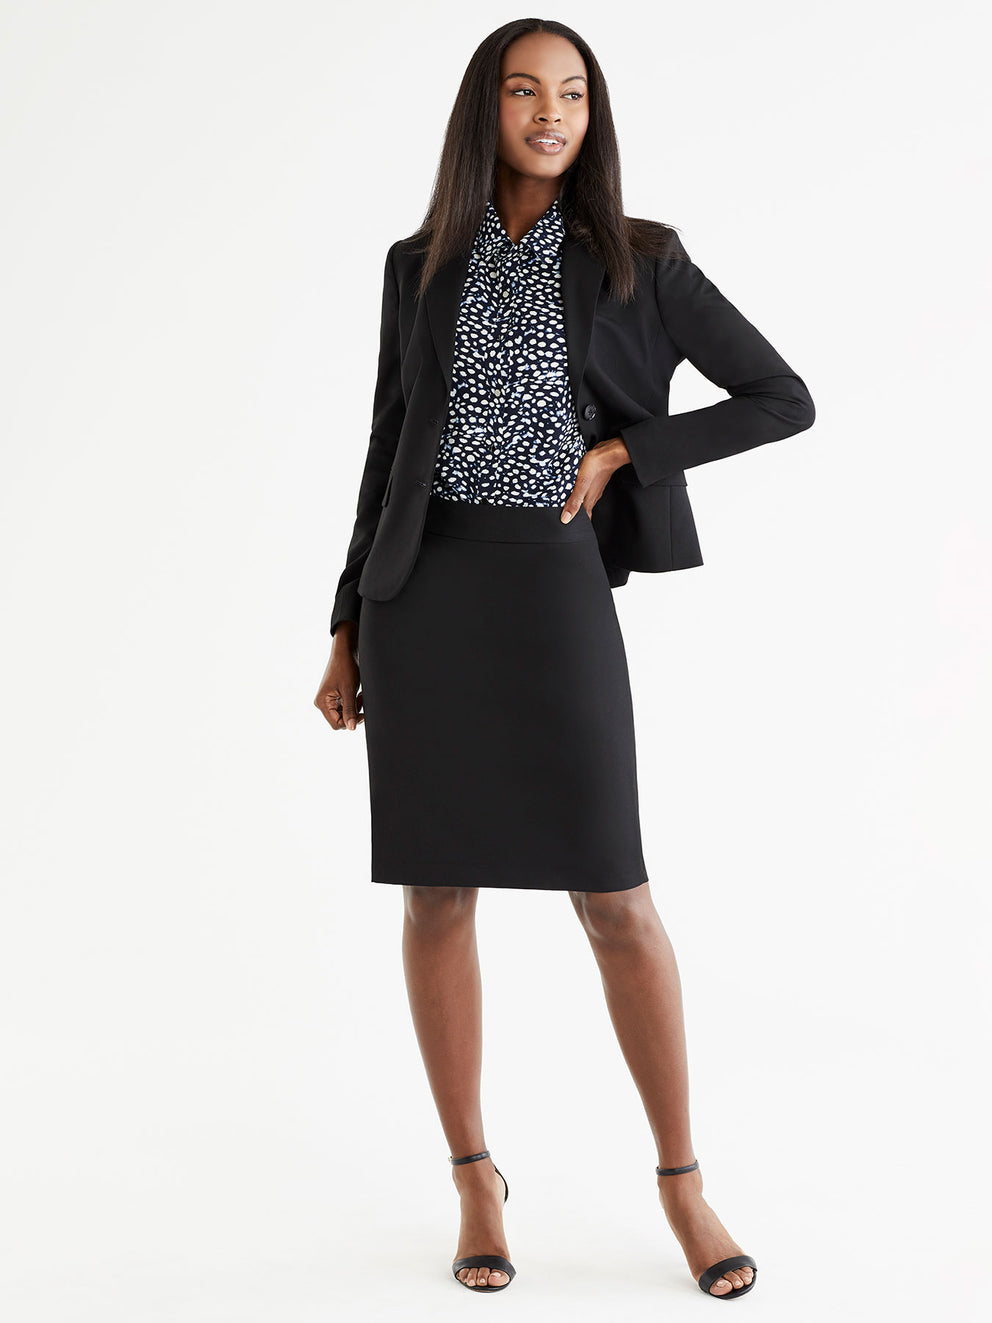 The Jones New York Washable Pencil Skirt in color Black - Image Position 2